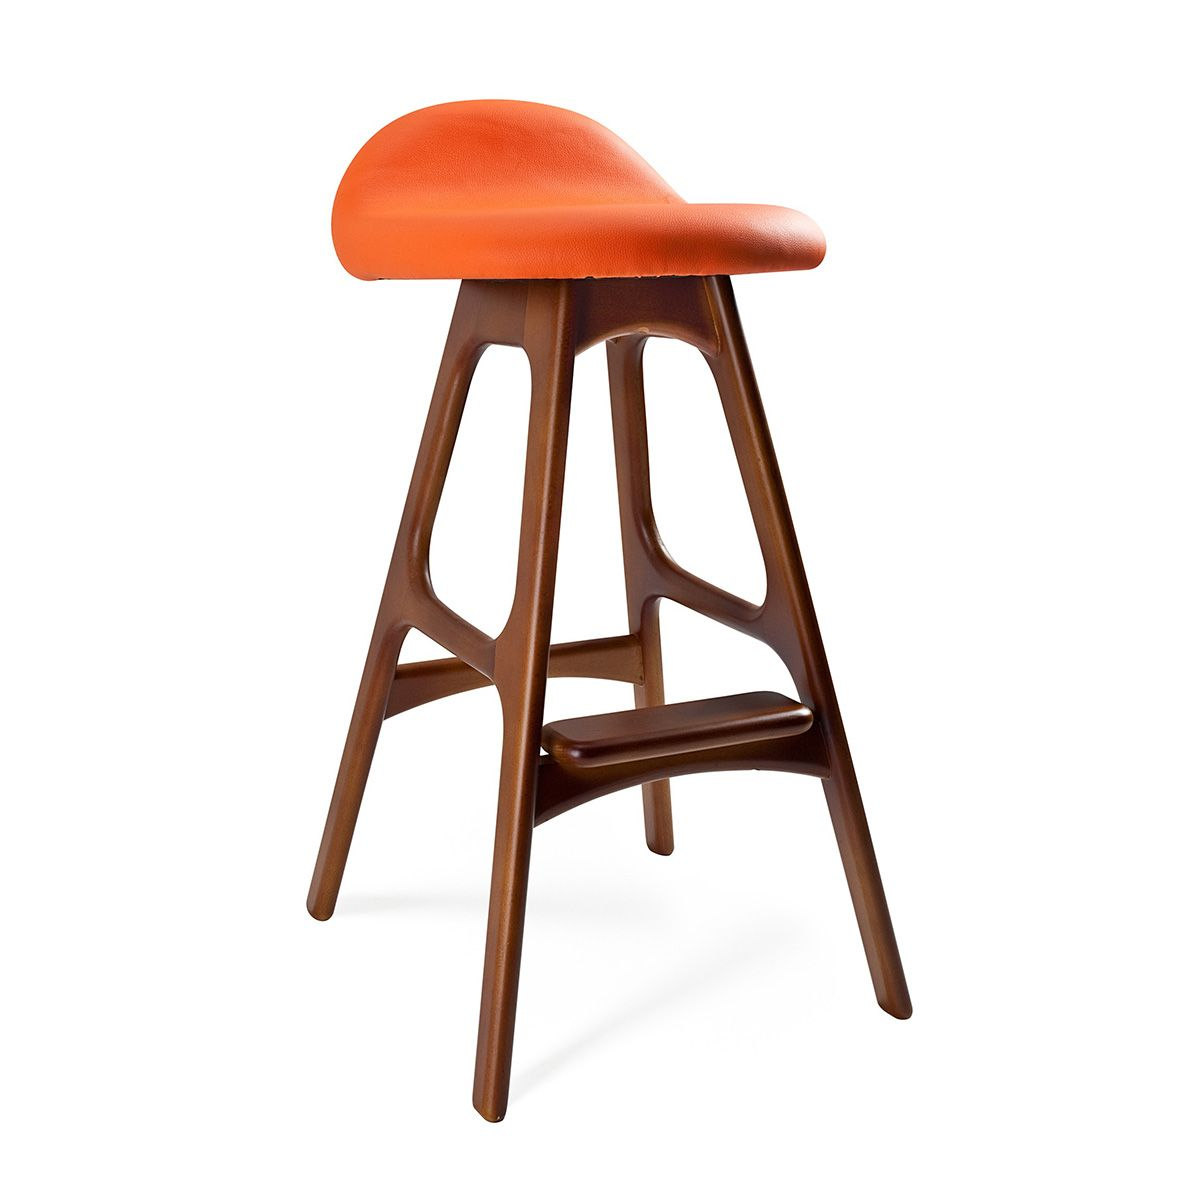 mid century inspired bar stool  orange  dotandbocom i love  - mid century inspired bar stool  orange  dotandbocom i love